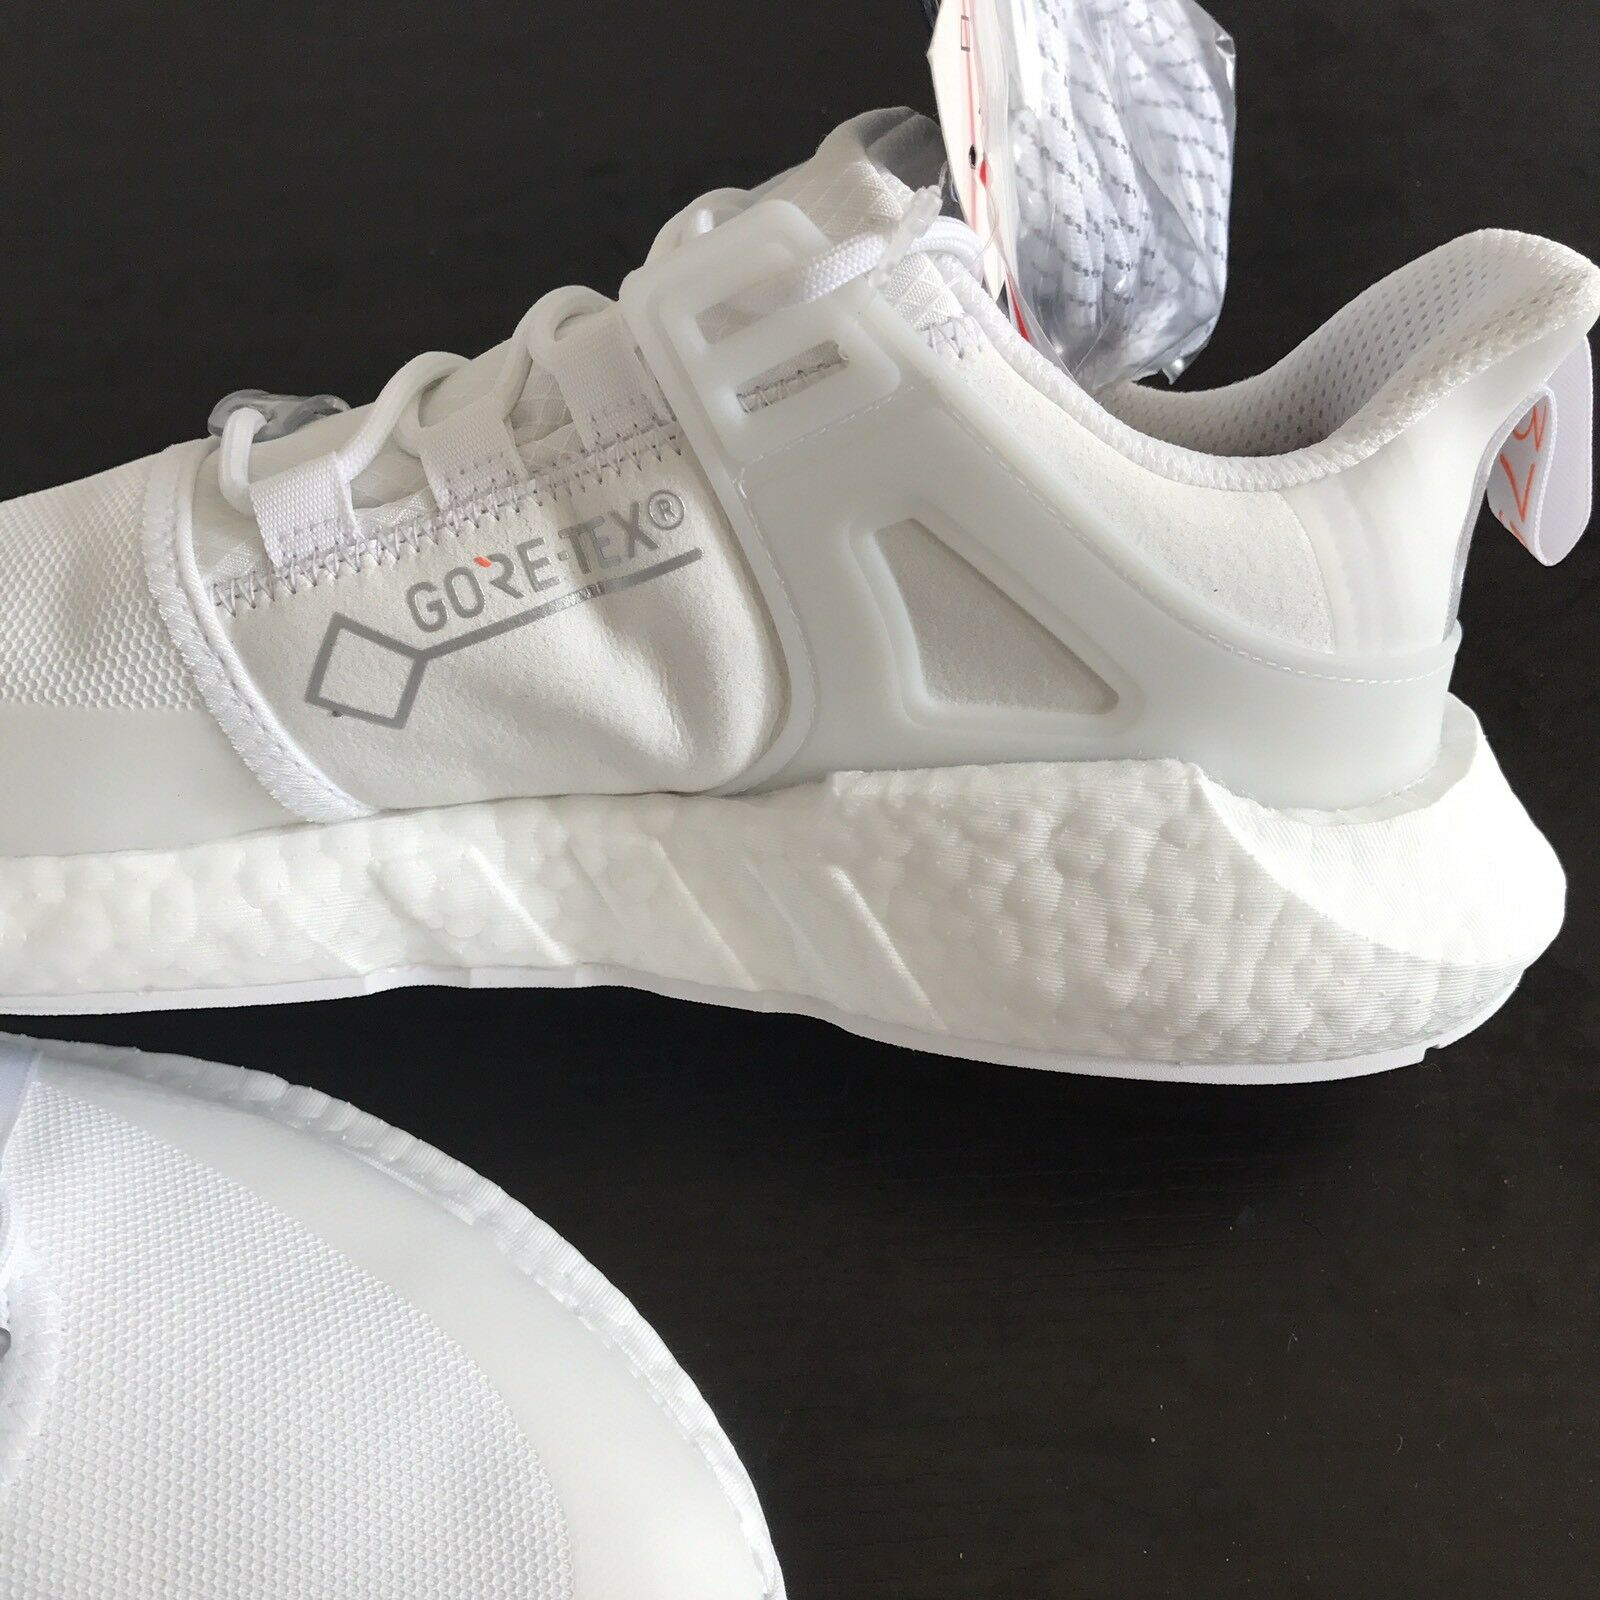 New Adidas Mens EQT Support 93/17 Boost GTX Gore Tex White Size 7